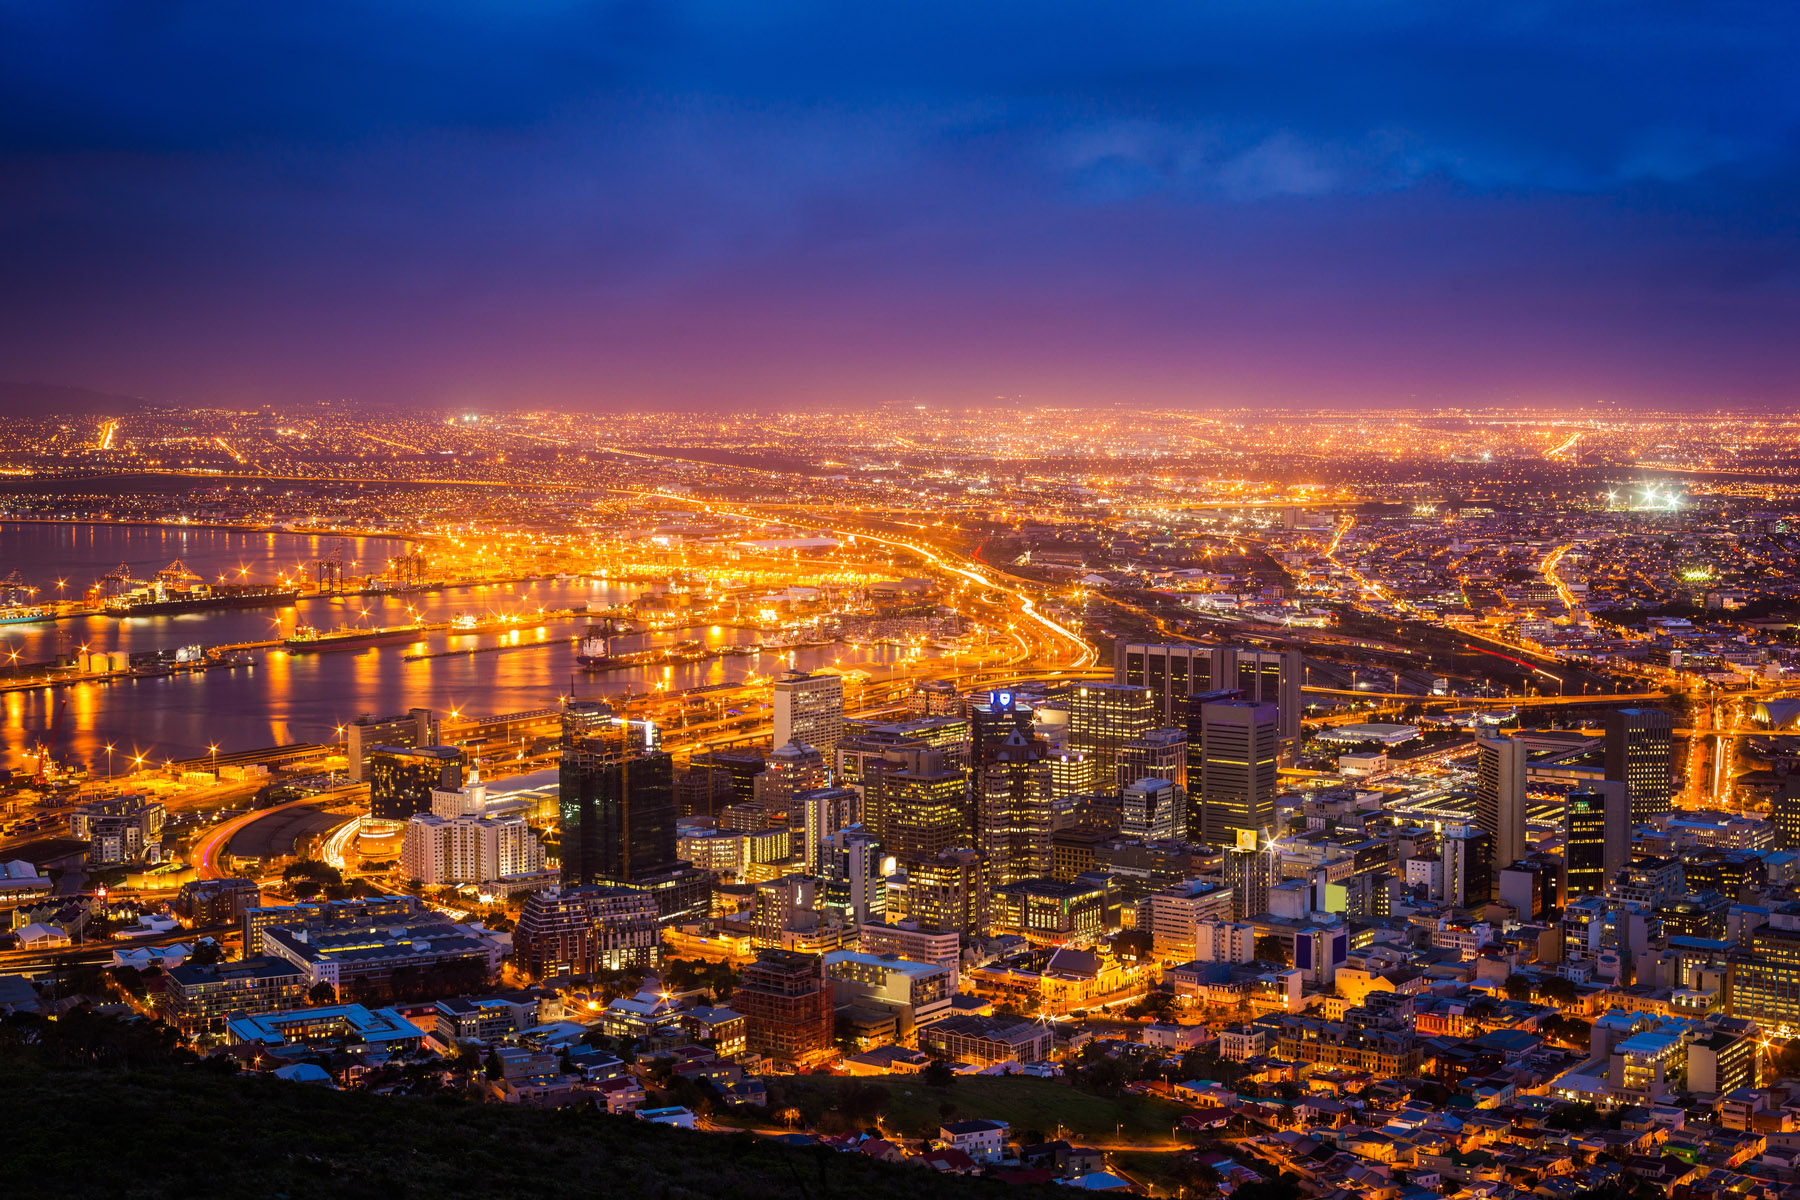 Cape Town skyline at night